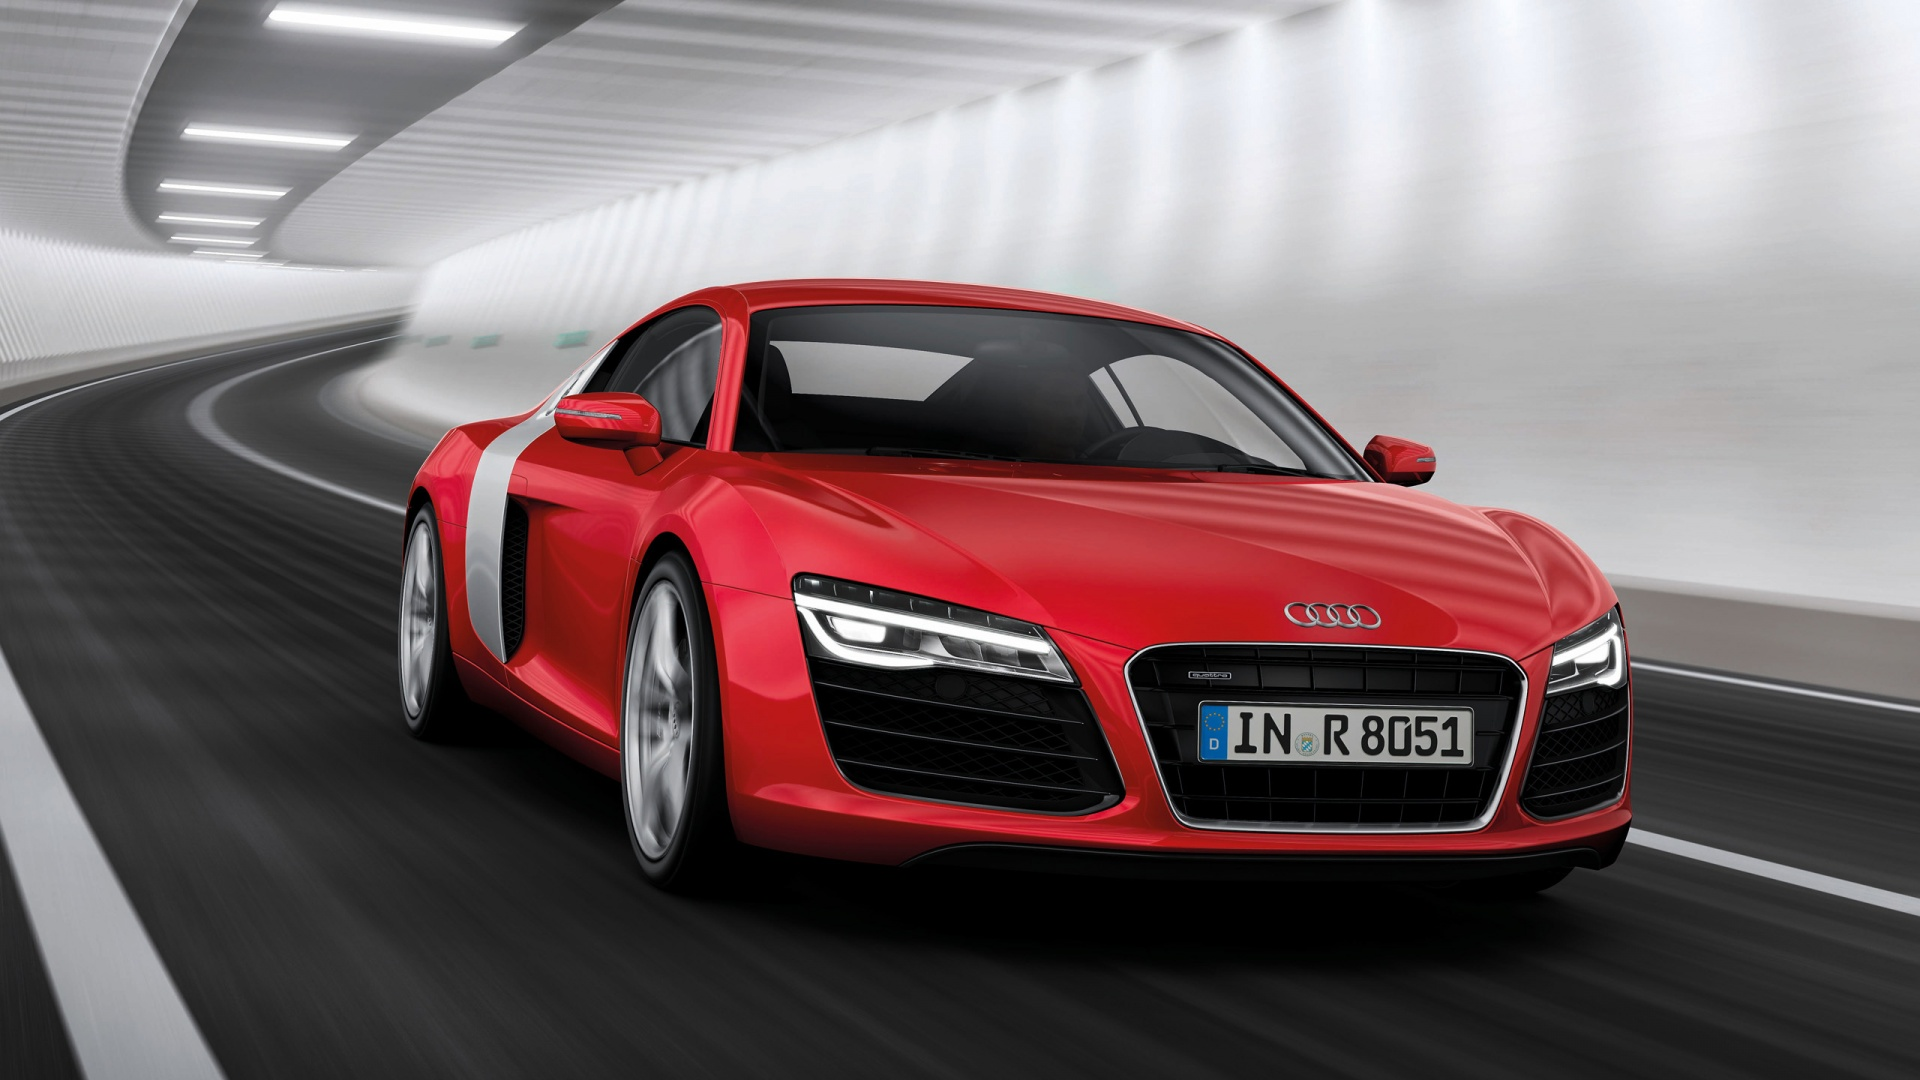 1920x1080 2013 Audi R8 Motion Red Front Angle Desktop PC And Mac Wallpaper